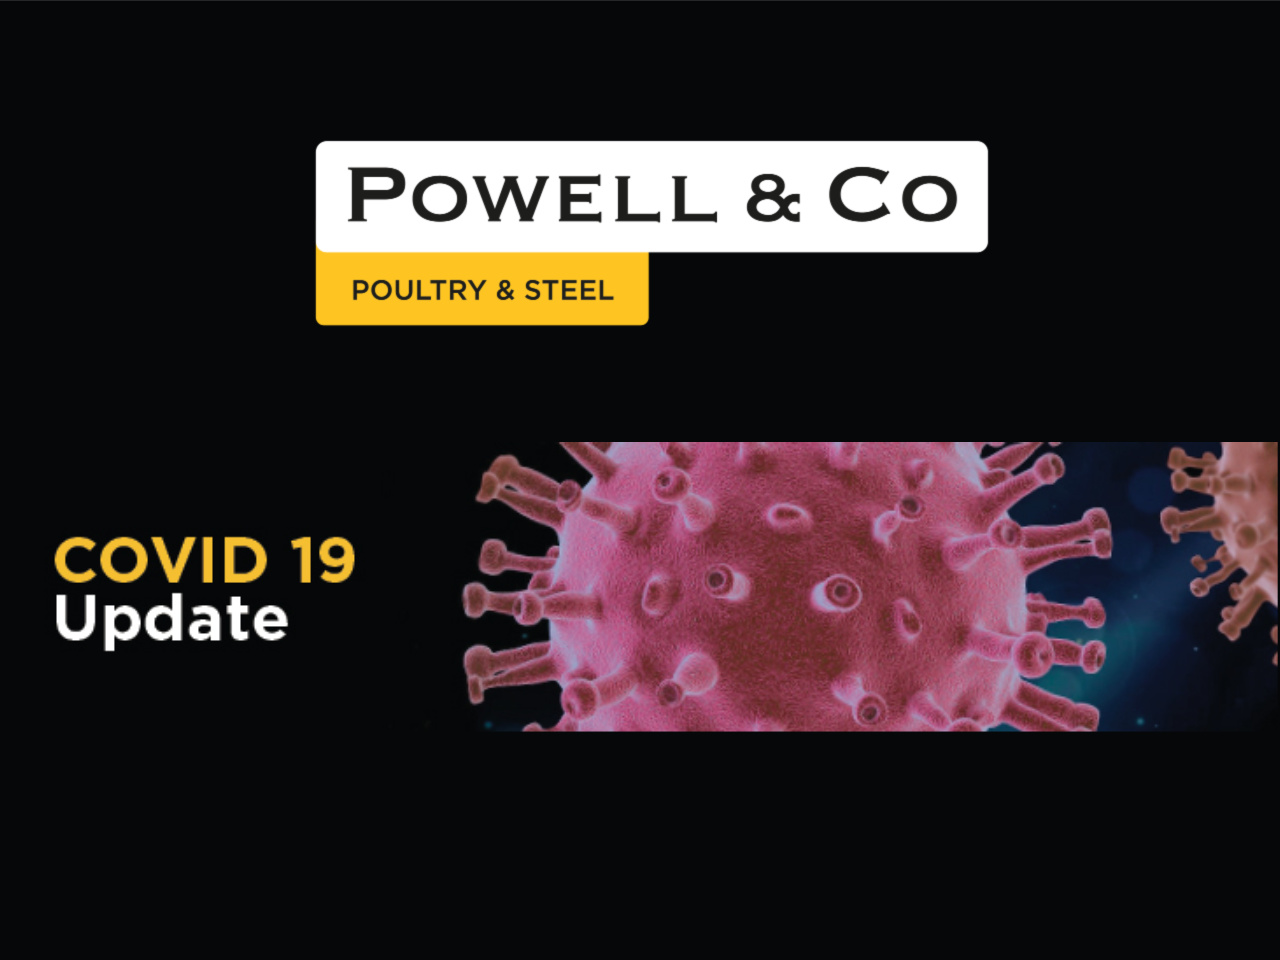 COVID 19 Update from Powell & Co